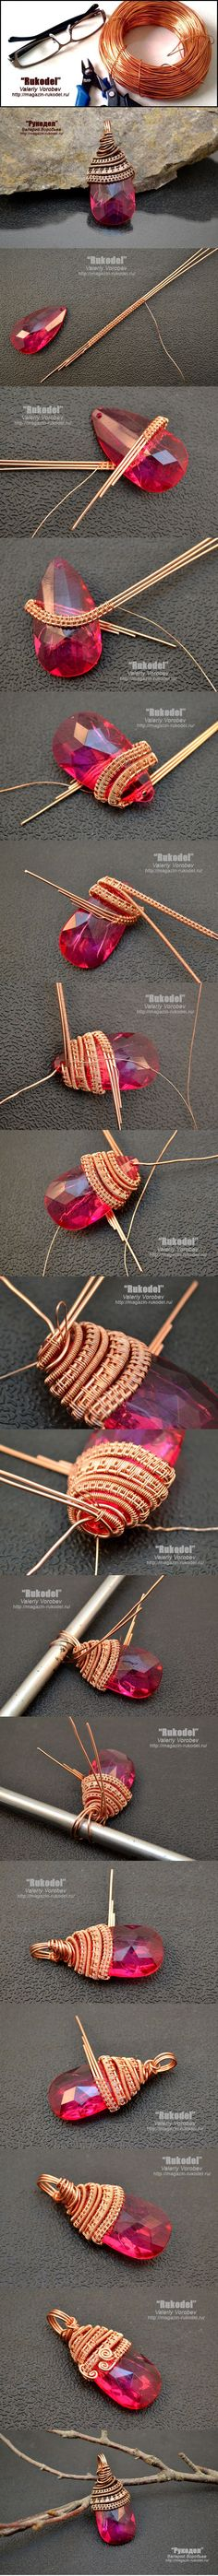 wire wrapped jewelry Ideas, Craft Ideas on wire wrapped jewelry Wire Jewelry Making, Jewelry Making Tutorials, Wire Wrapped Jewelry, Wire Tutorials, Jewellery Making, Wire Crafts, Jewelry Crafts, Handmade Jewelry, Jewelry Ideas